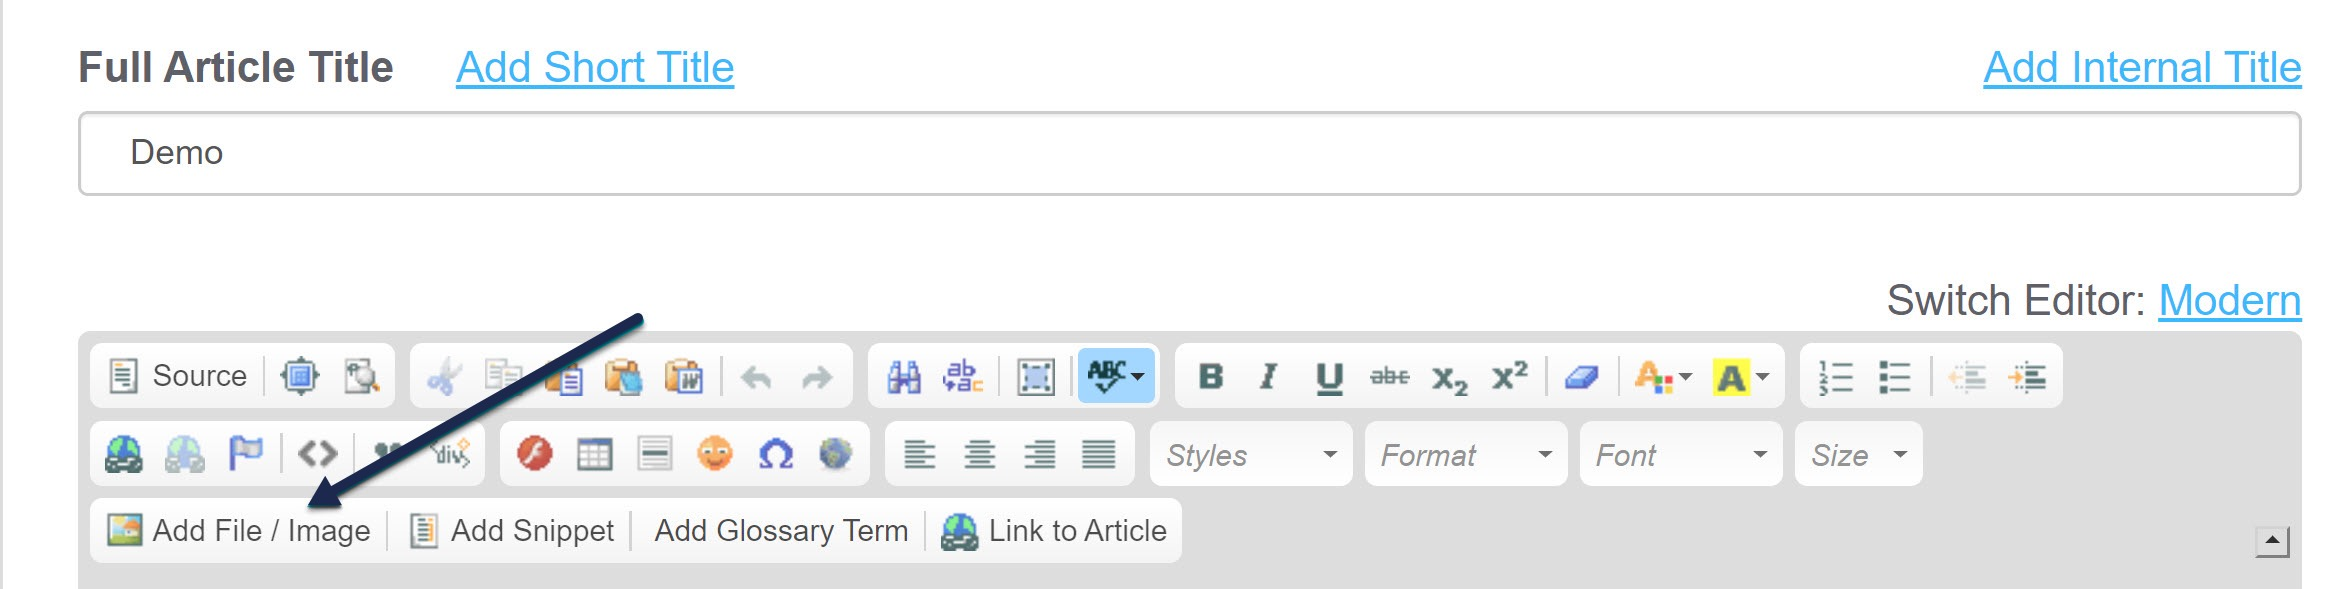 Screenshot showing the Legacy Editor with a callout to the Add File / Image button